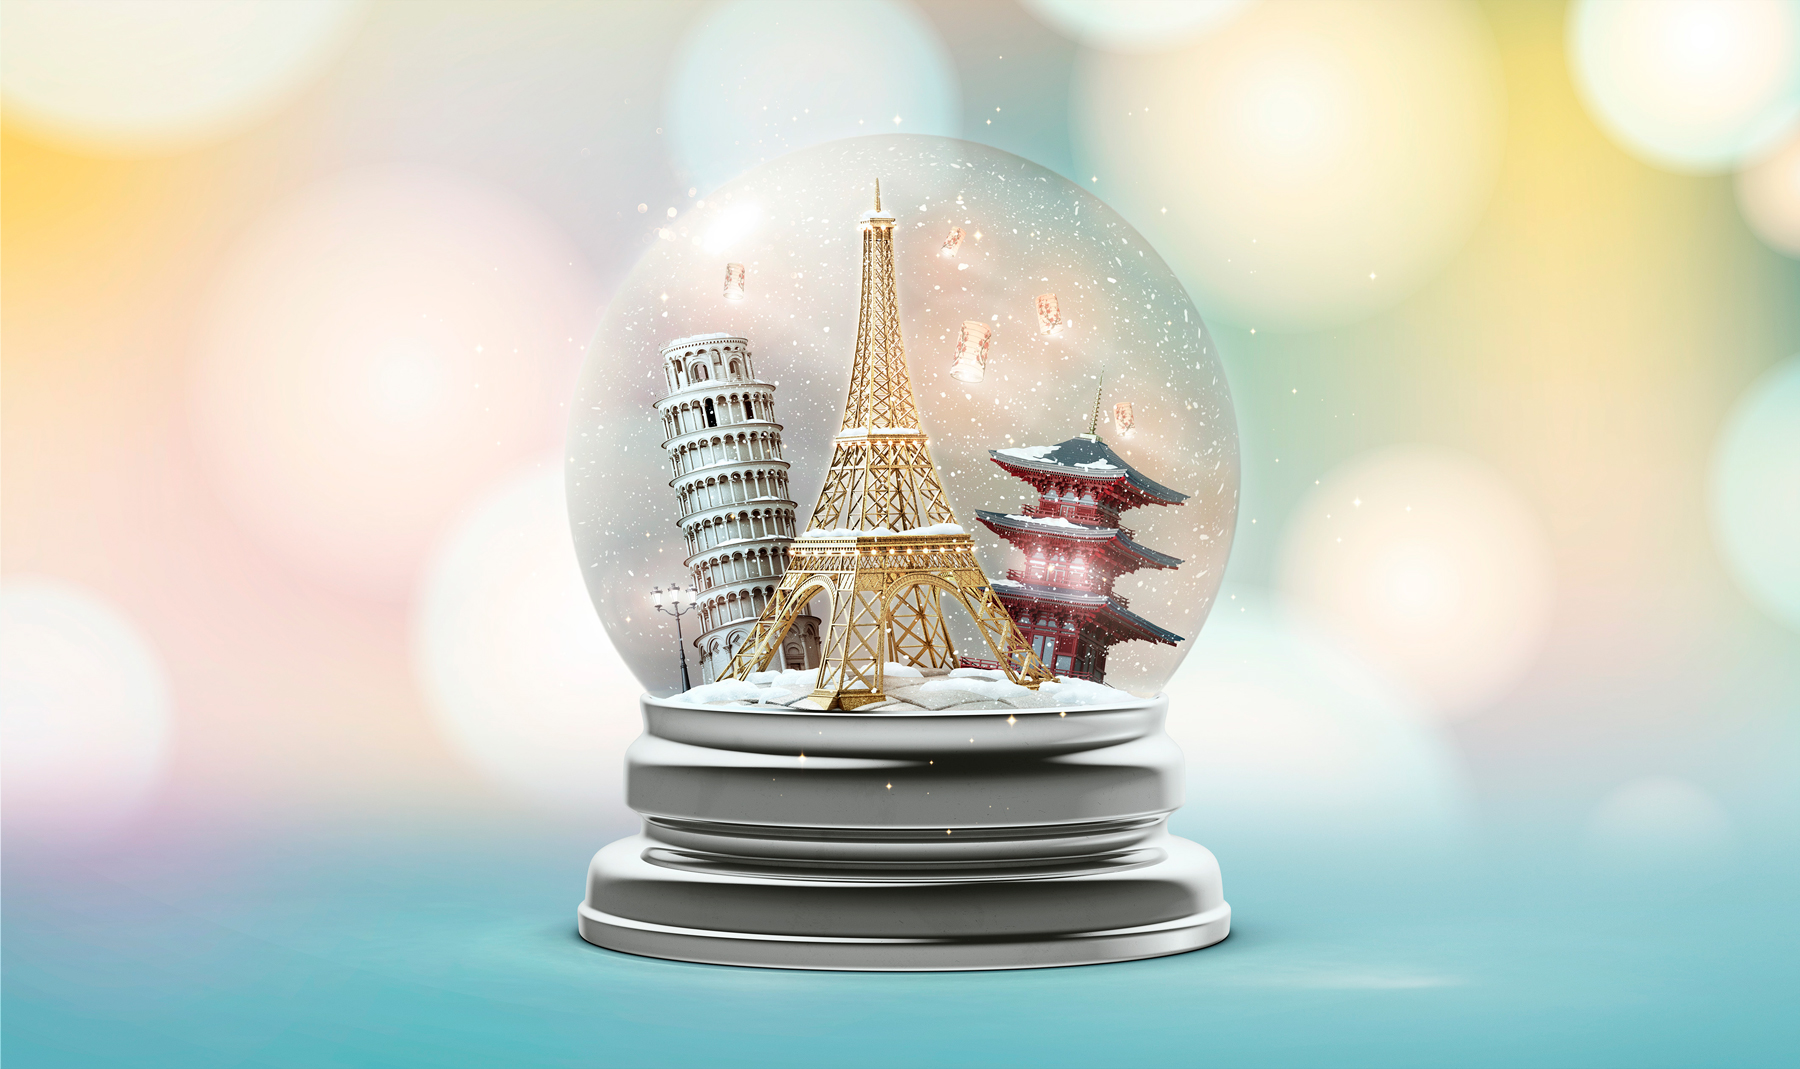 Snow globes Combined